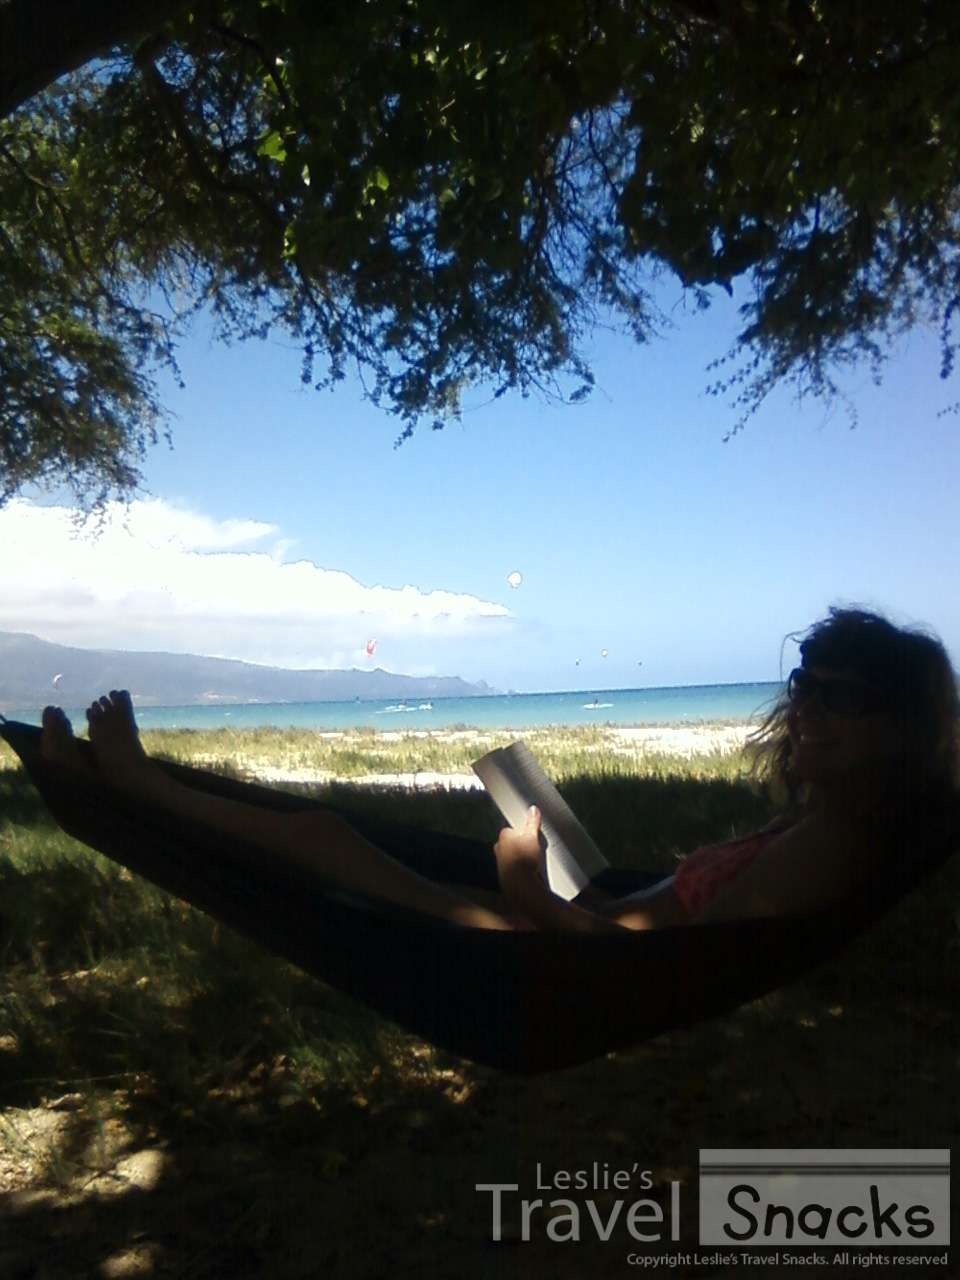 I spent many an hour here in this hammock on Kanaha beach while my (now-ex) indulged his obsession.